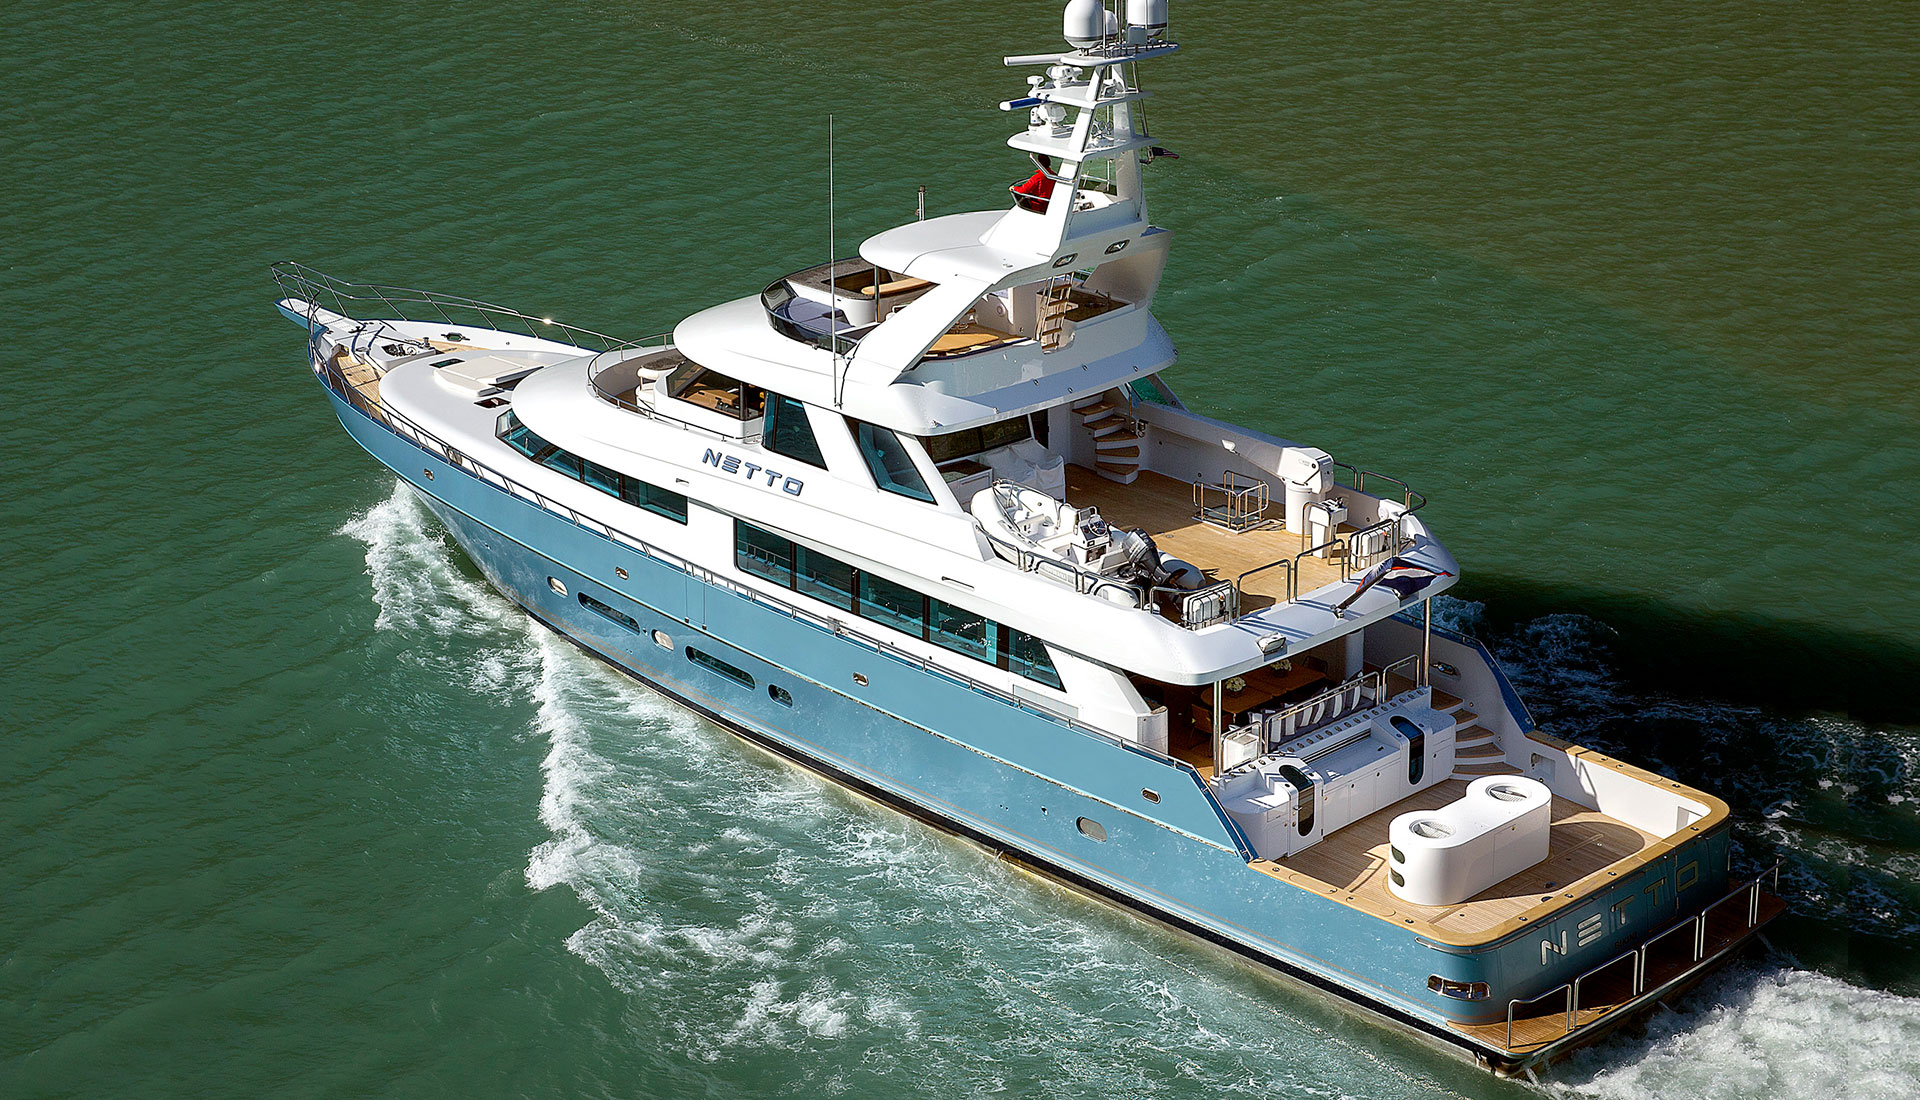 Nordlund 115' Yachtfisher Netto Under Way